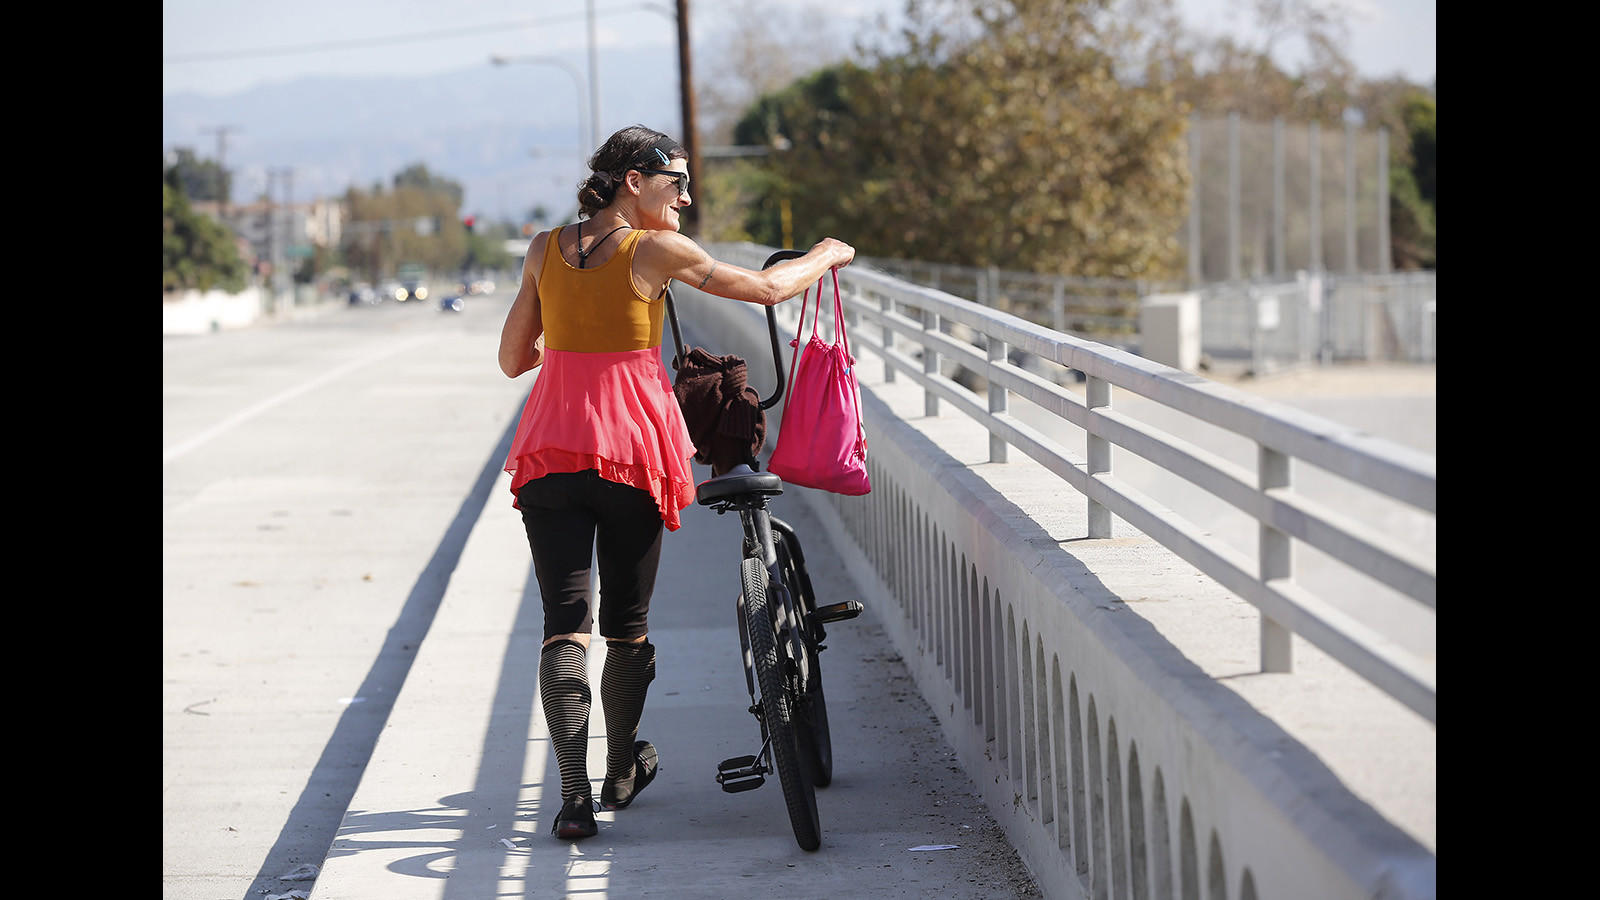 A woman walks past the homeless encampment along the Santa Ana River in Fountain Valley on Thursday.